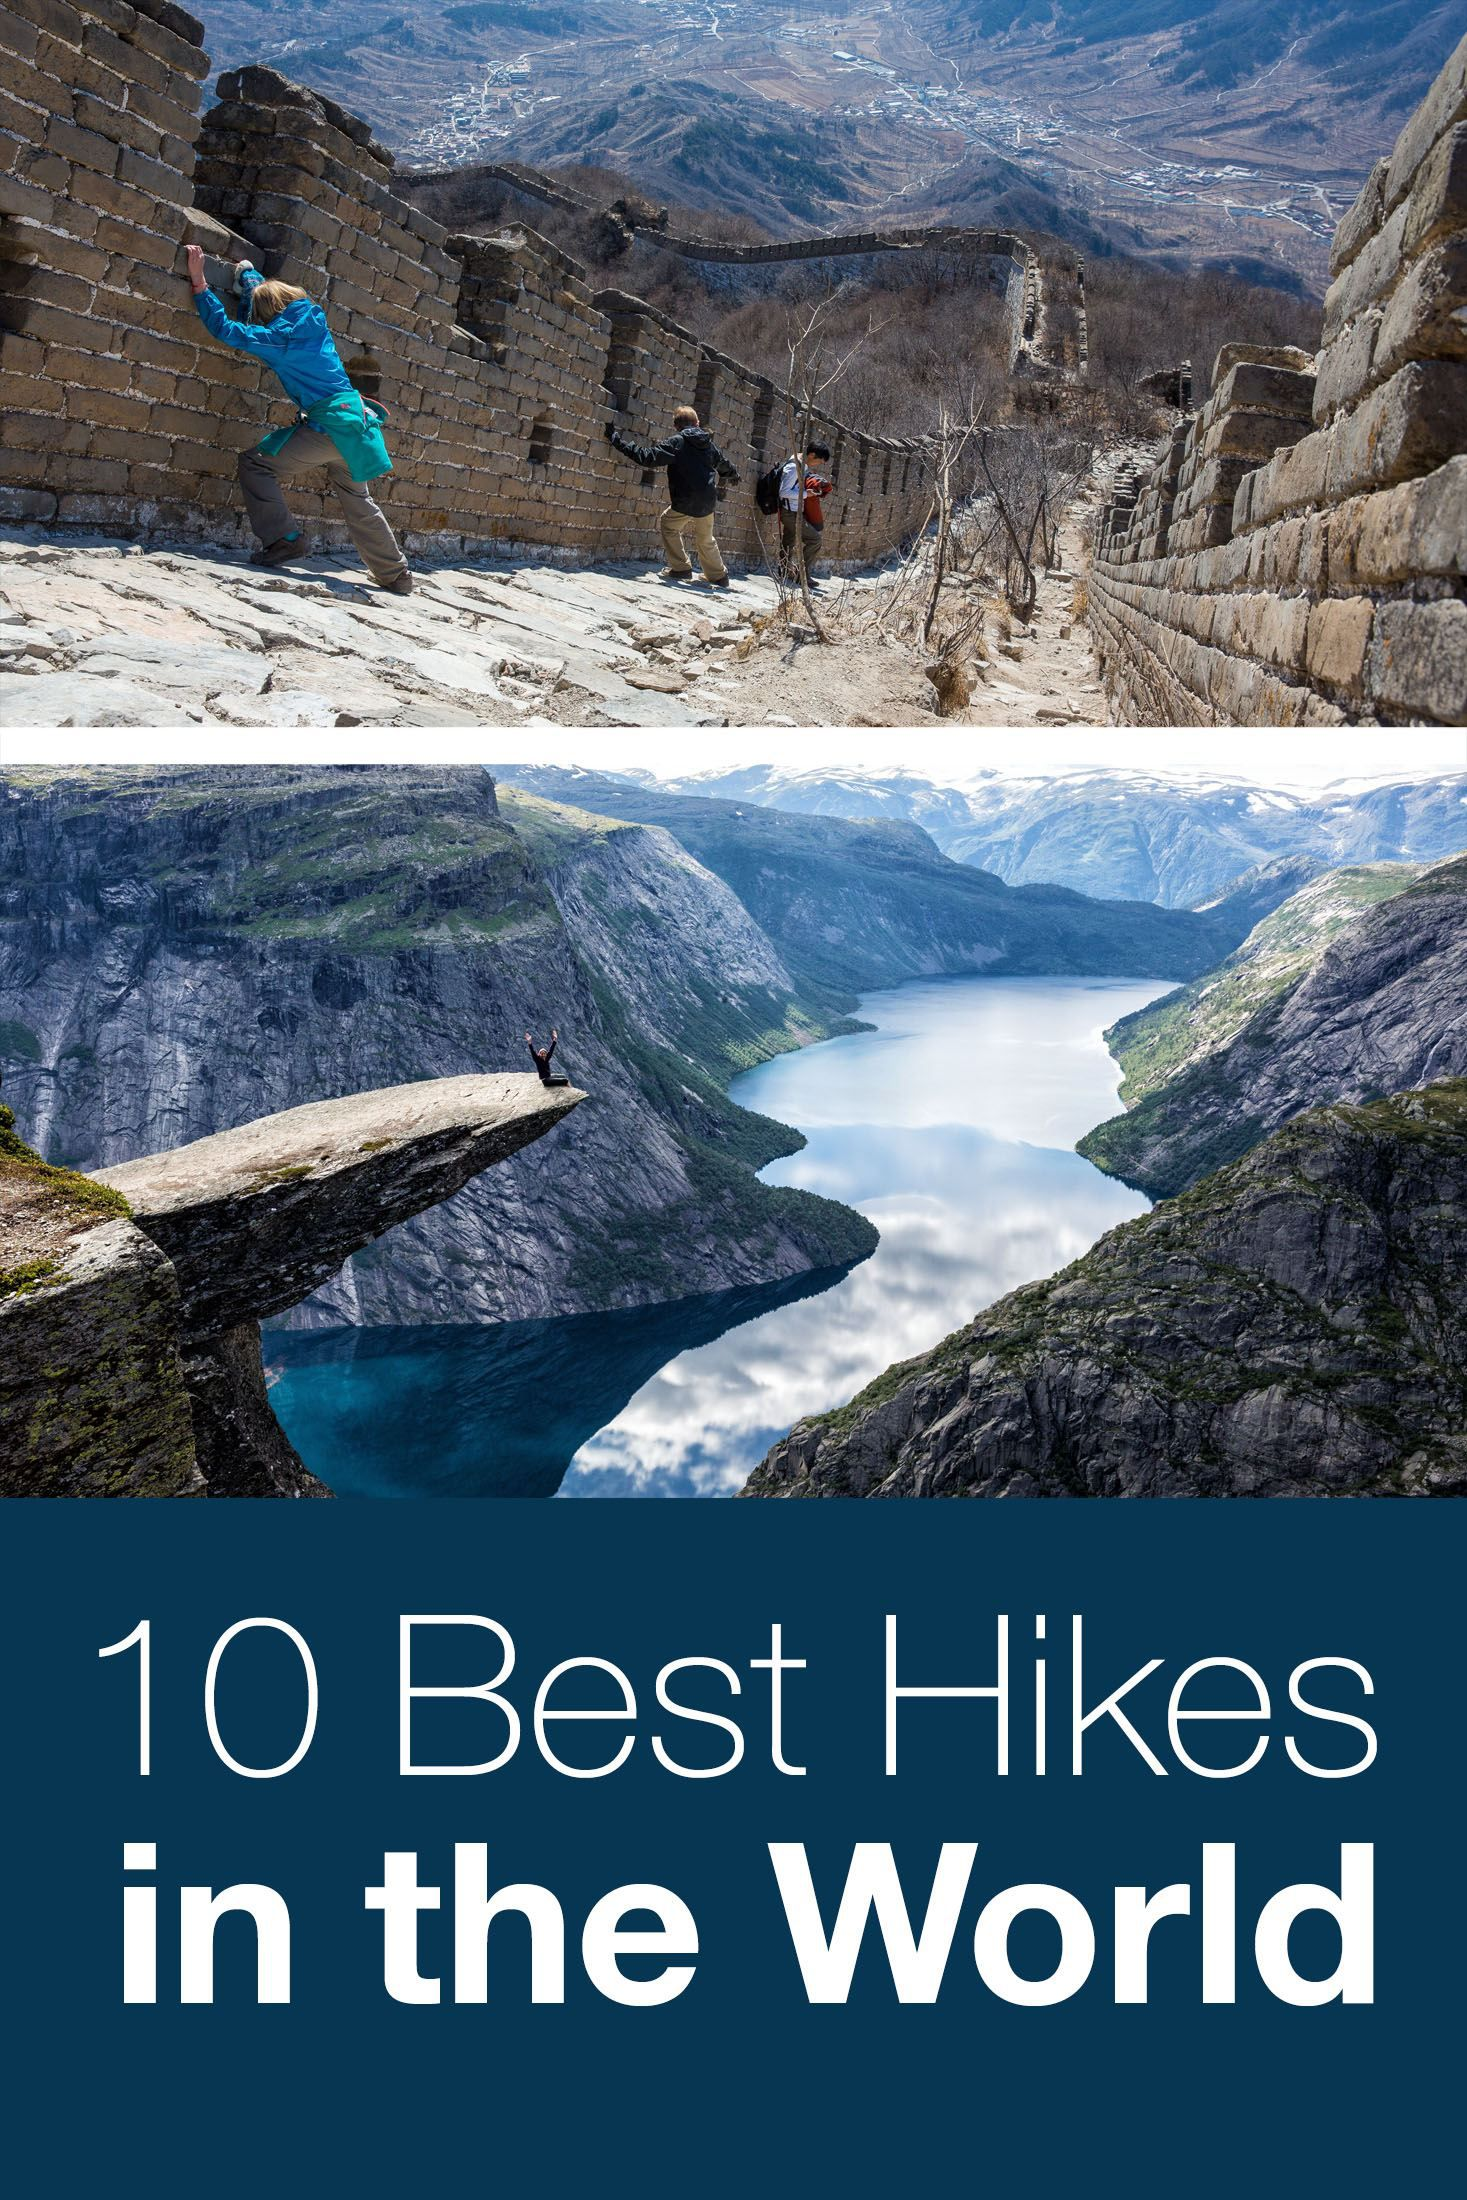 10 Best Hikes in the World